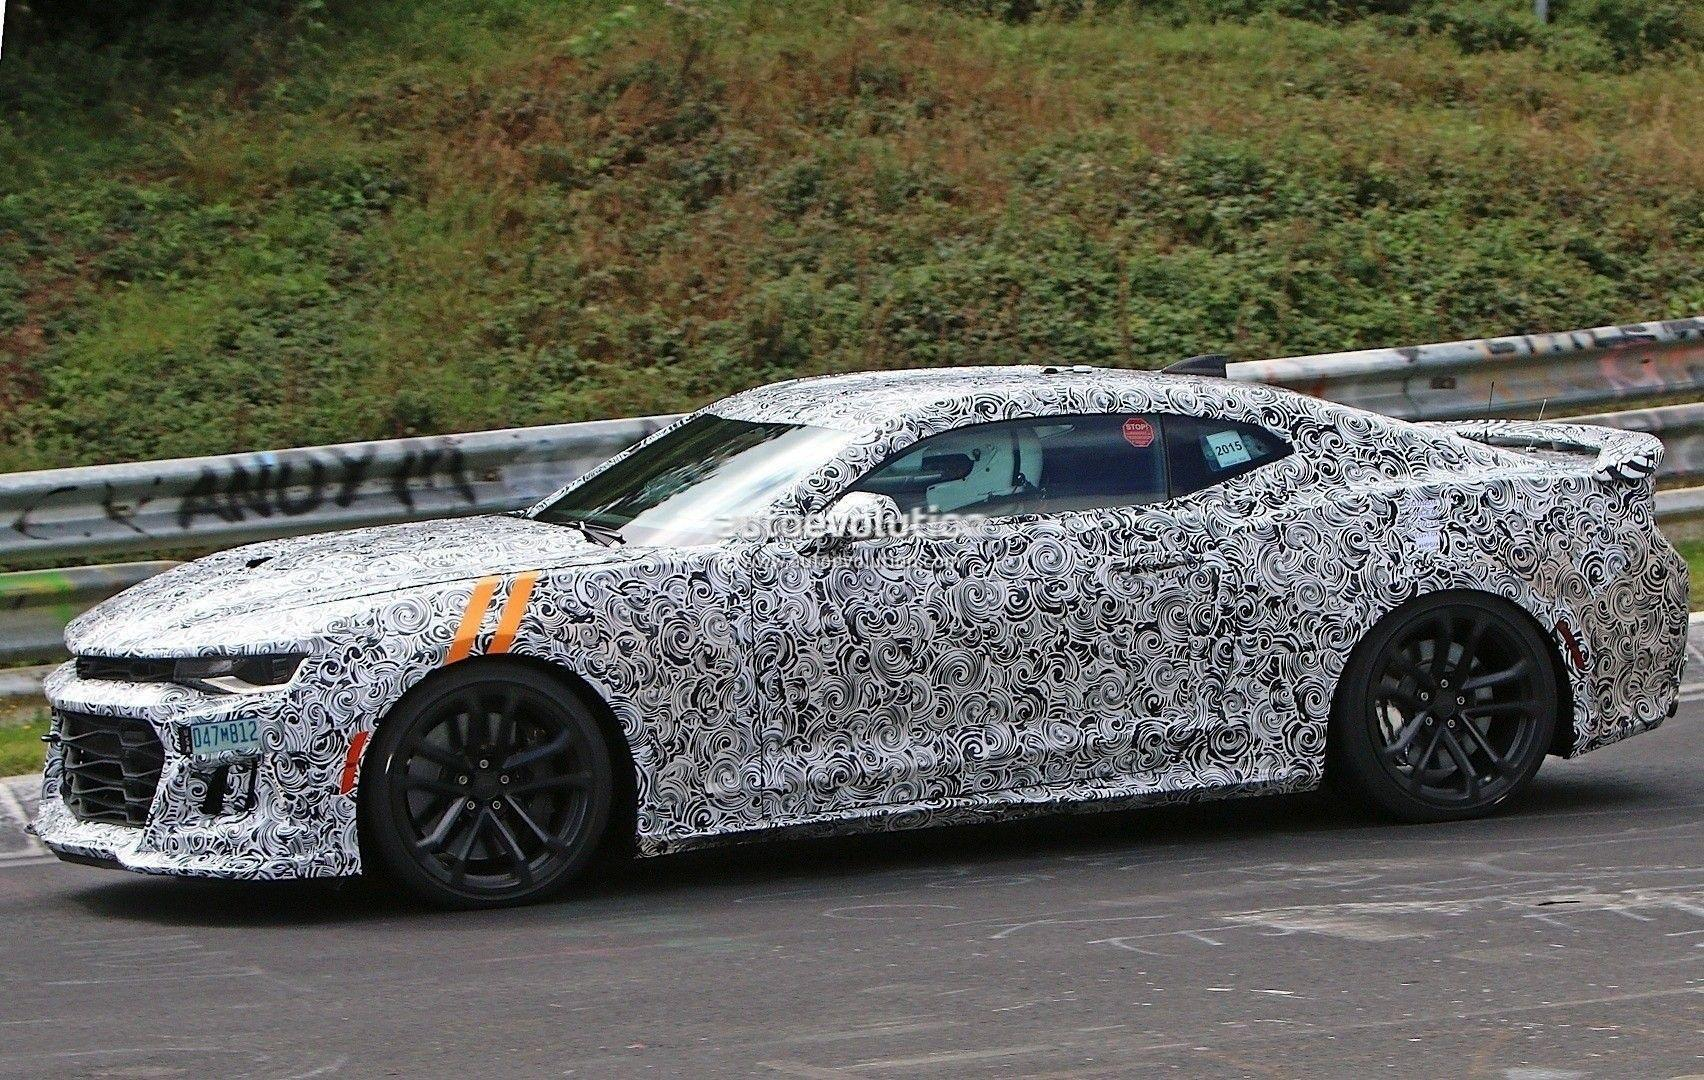 2017 Chevrolet Camaro ZL1 Shows Up on Nurburgring, Spied Prototype